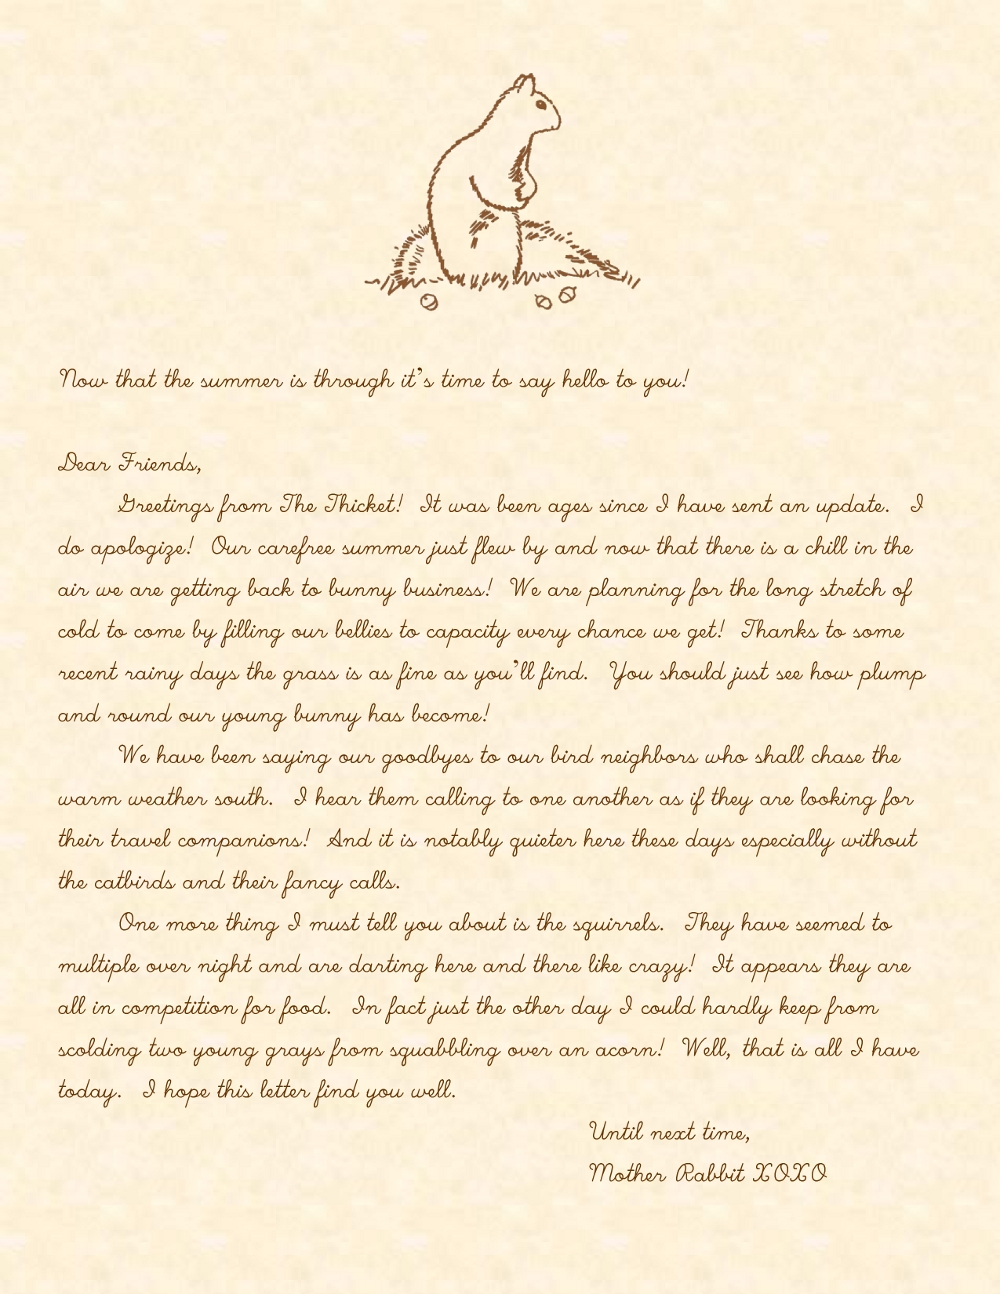 A Handwritten Letter from Mother Rabbit